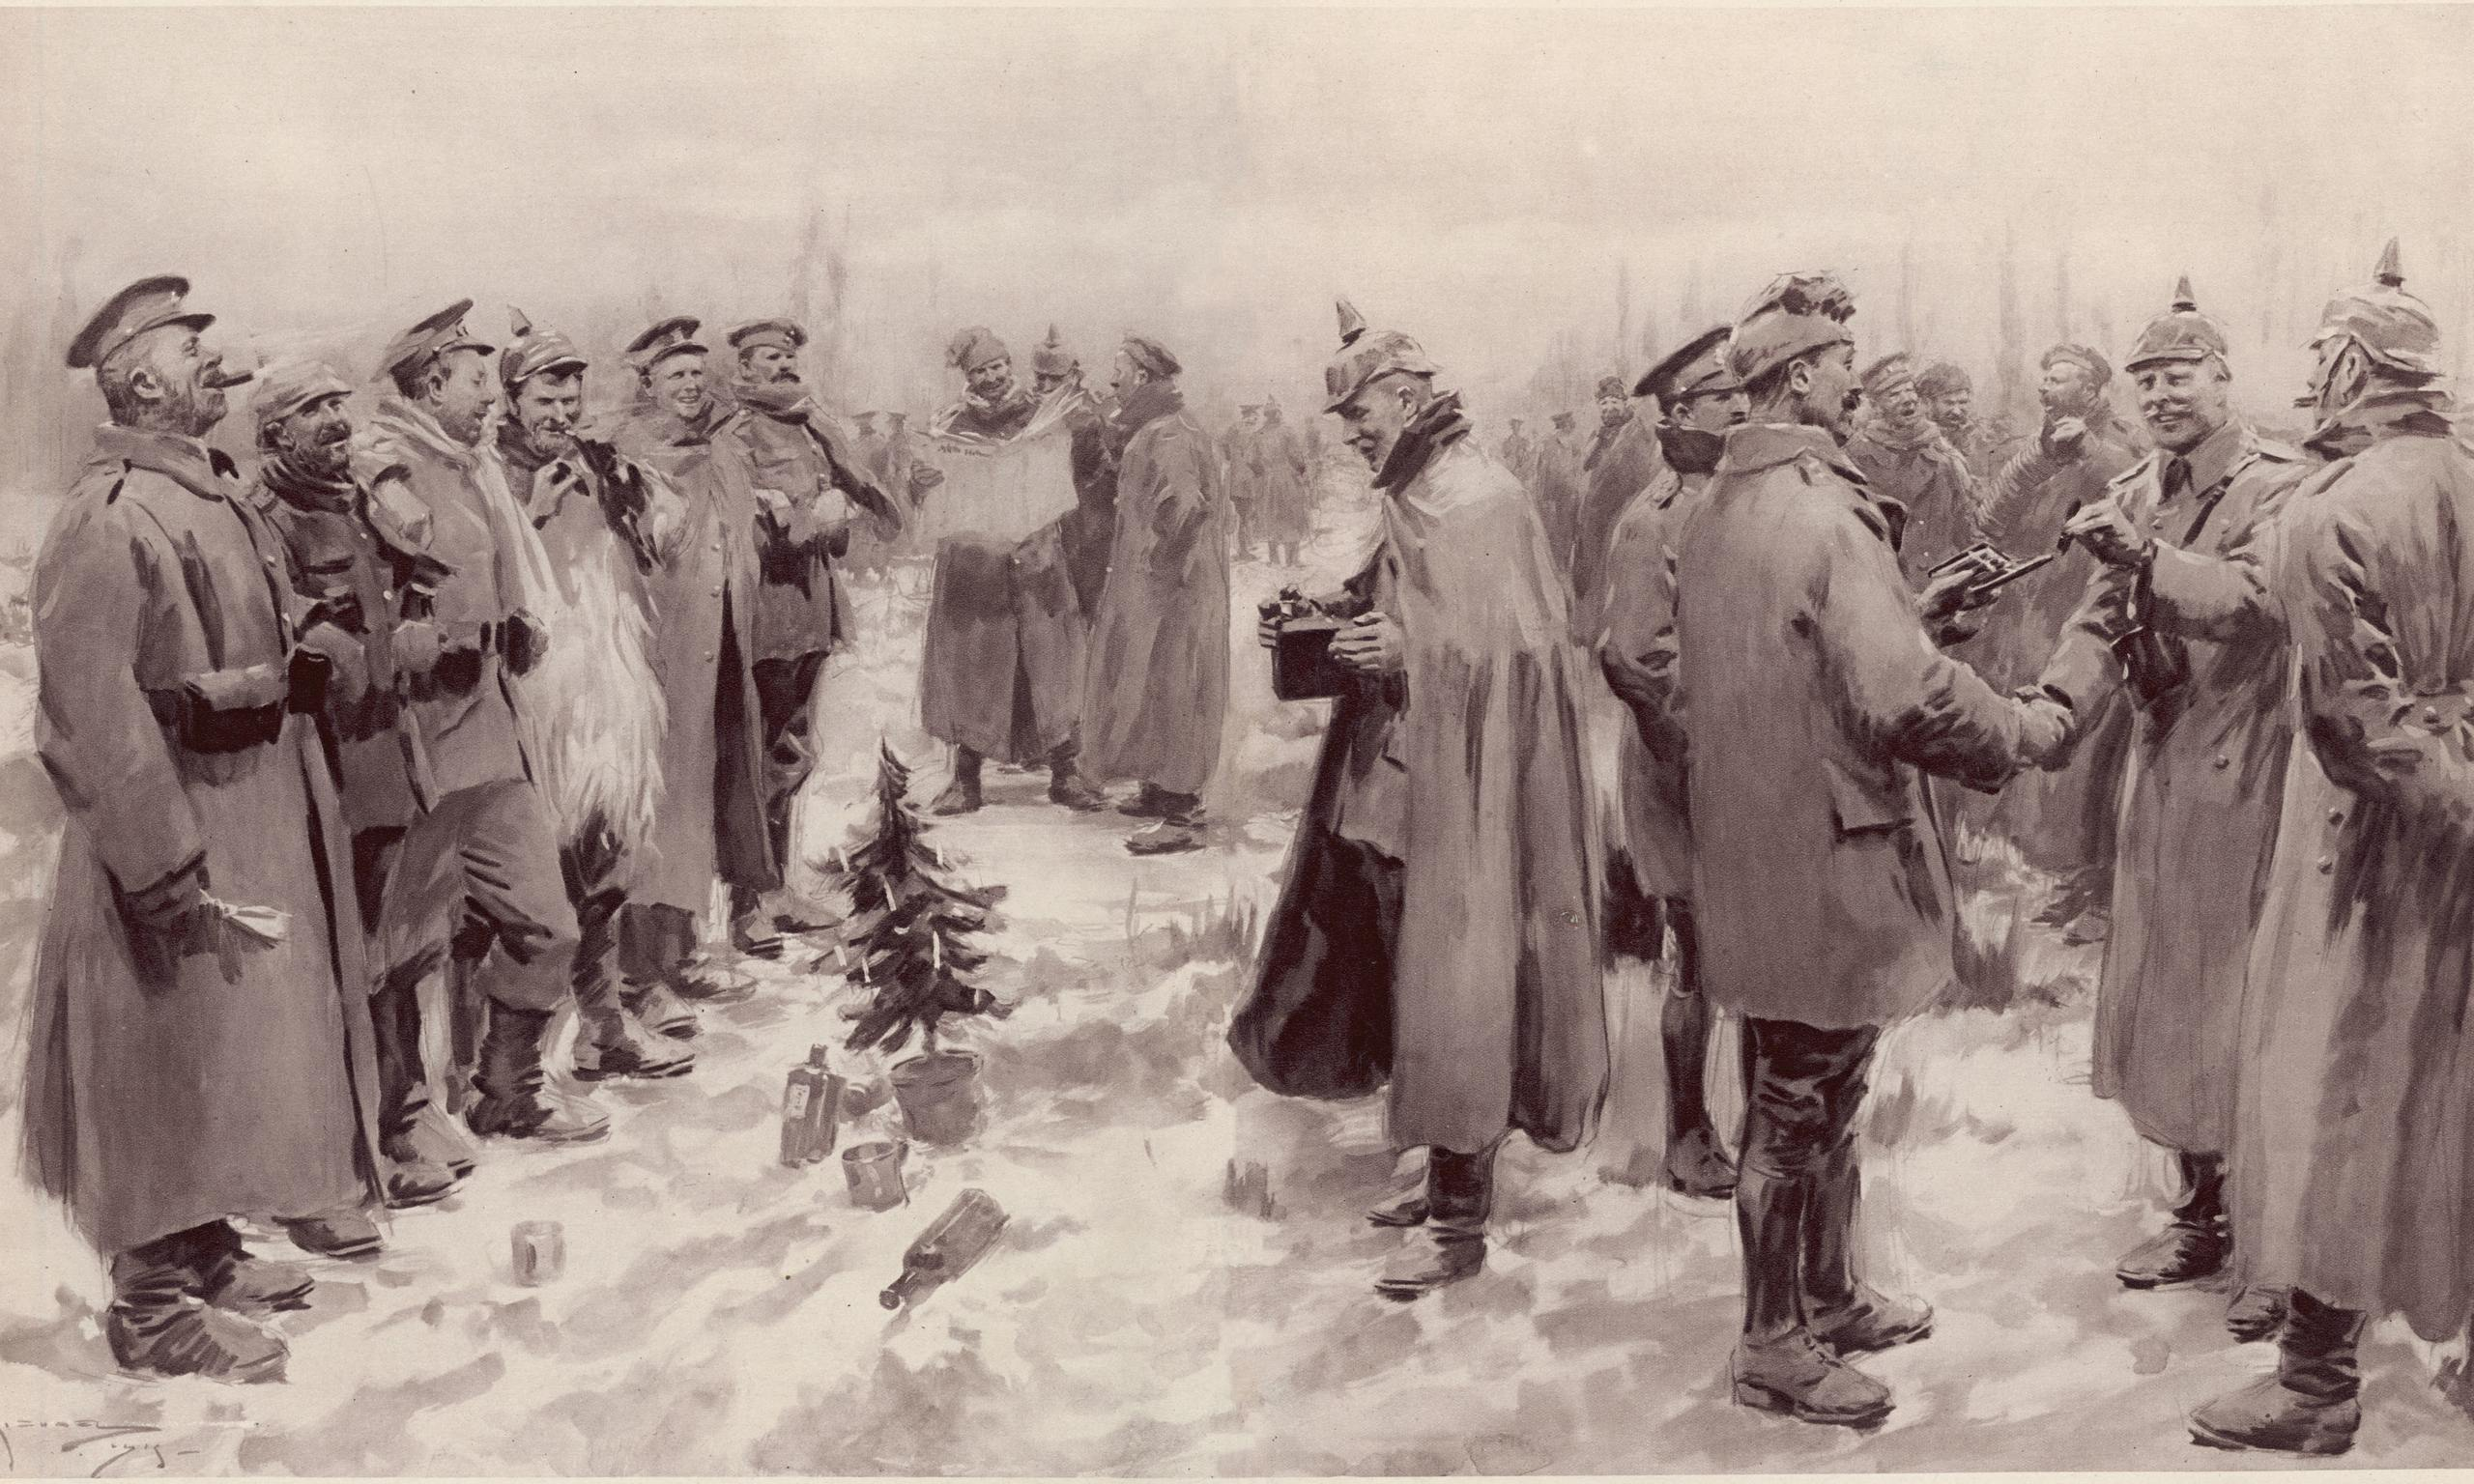 http://upload.wikimedia.org/wikipedia/en/4/42/Illustrated_London_News_-_Christmas_Truce_1914.jpg